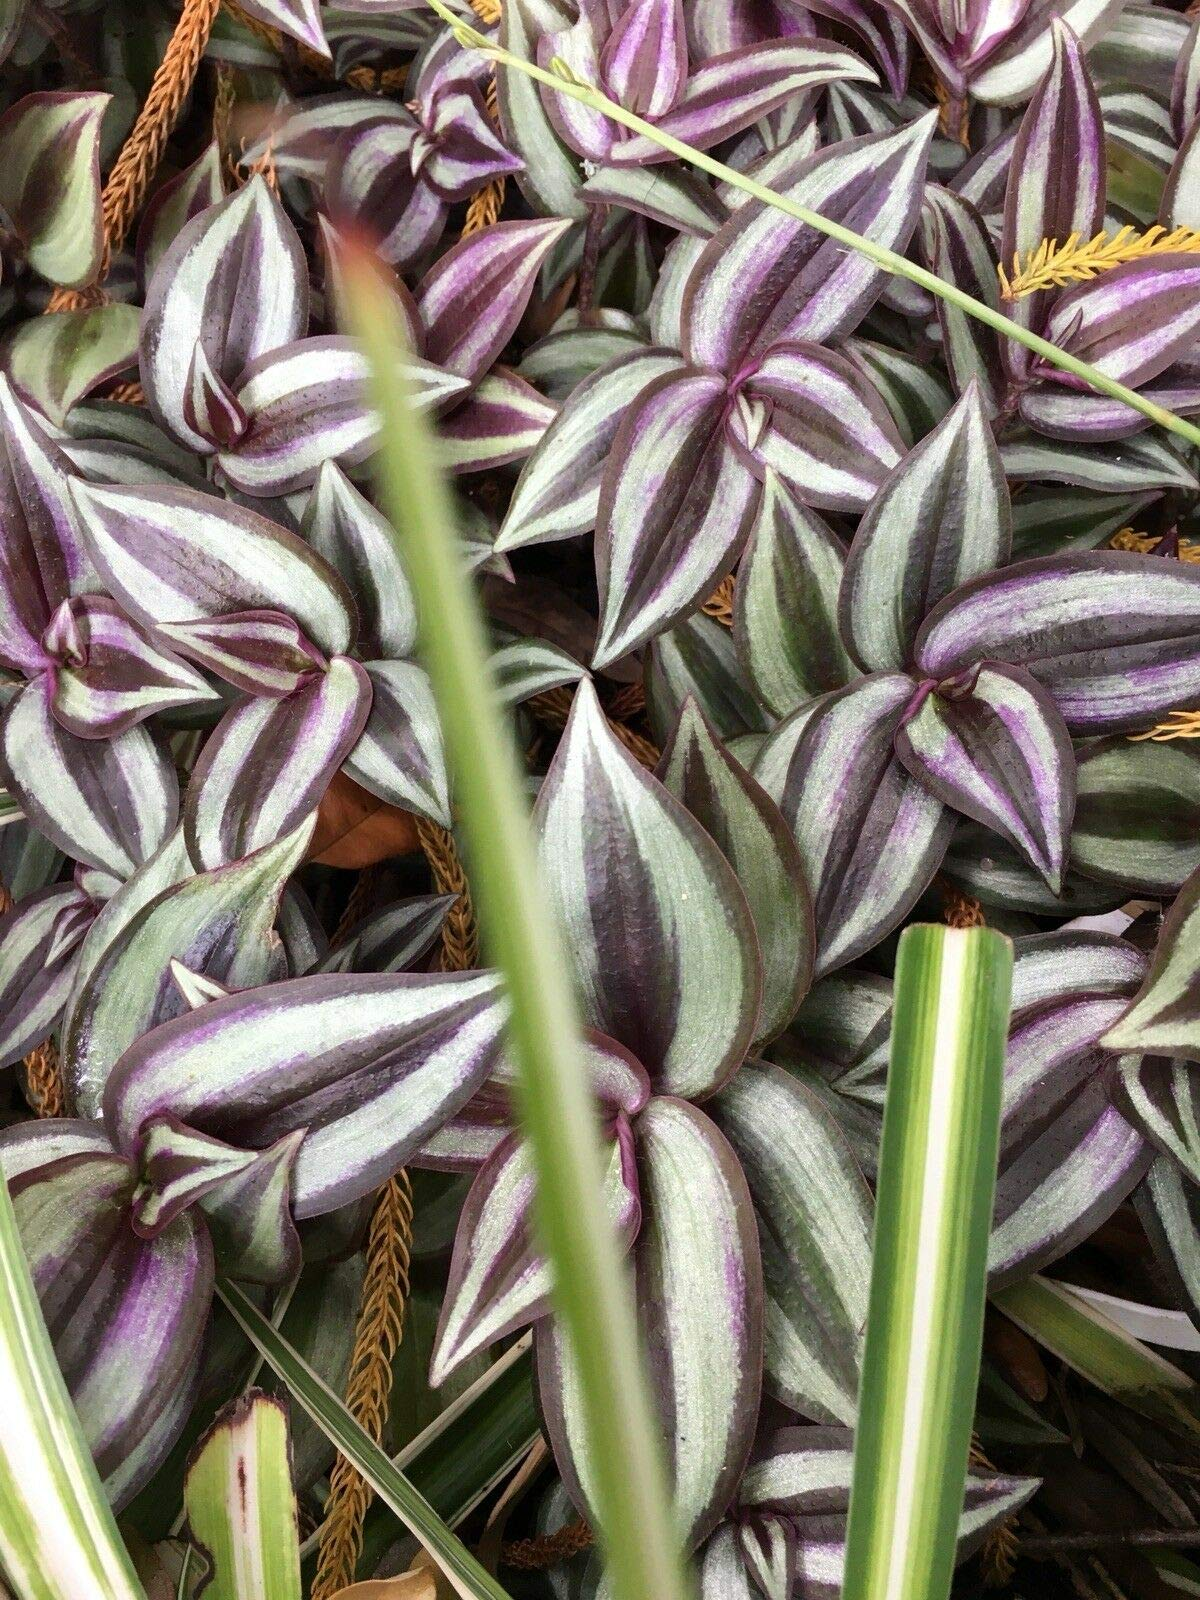 Wandering Jew Tradescantia Zebrina House Plant 6 Rooted Cuttings Burgundy Silver (Premium Quality) by AY-premium